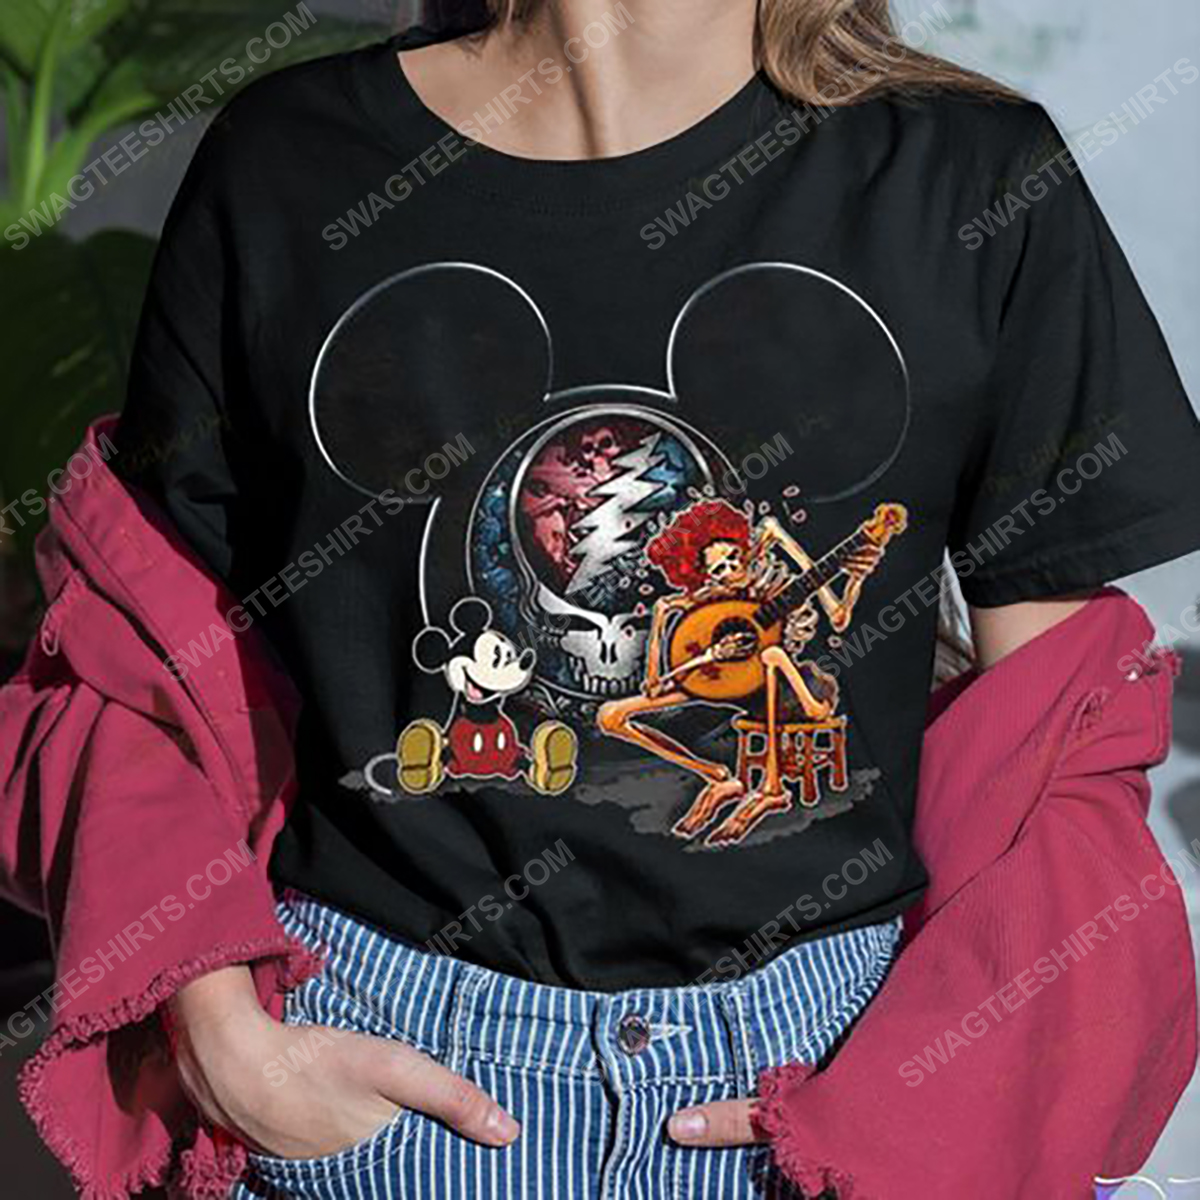 The grateful dead rock band and mickey mouse shirt 3(1)